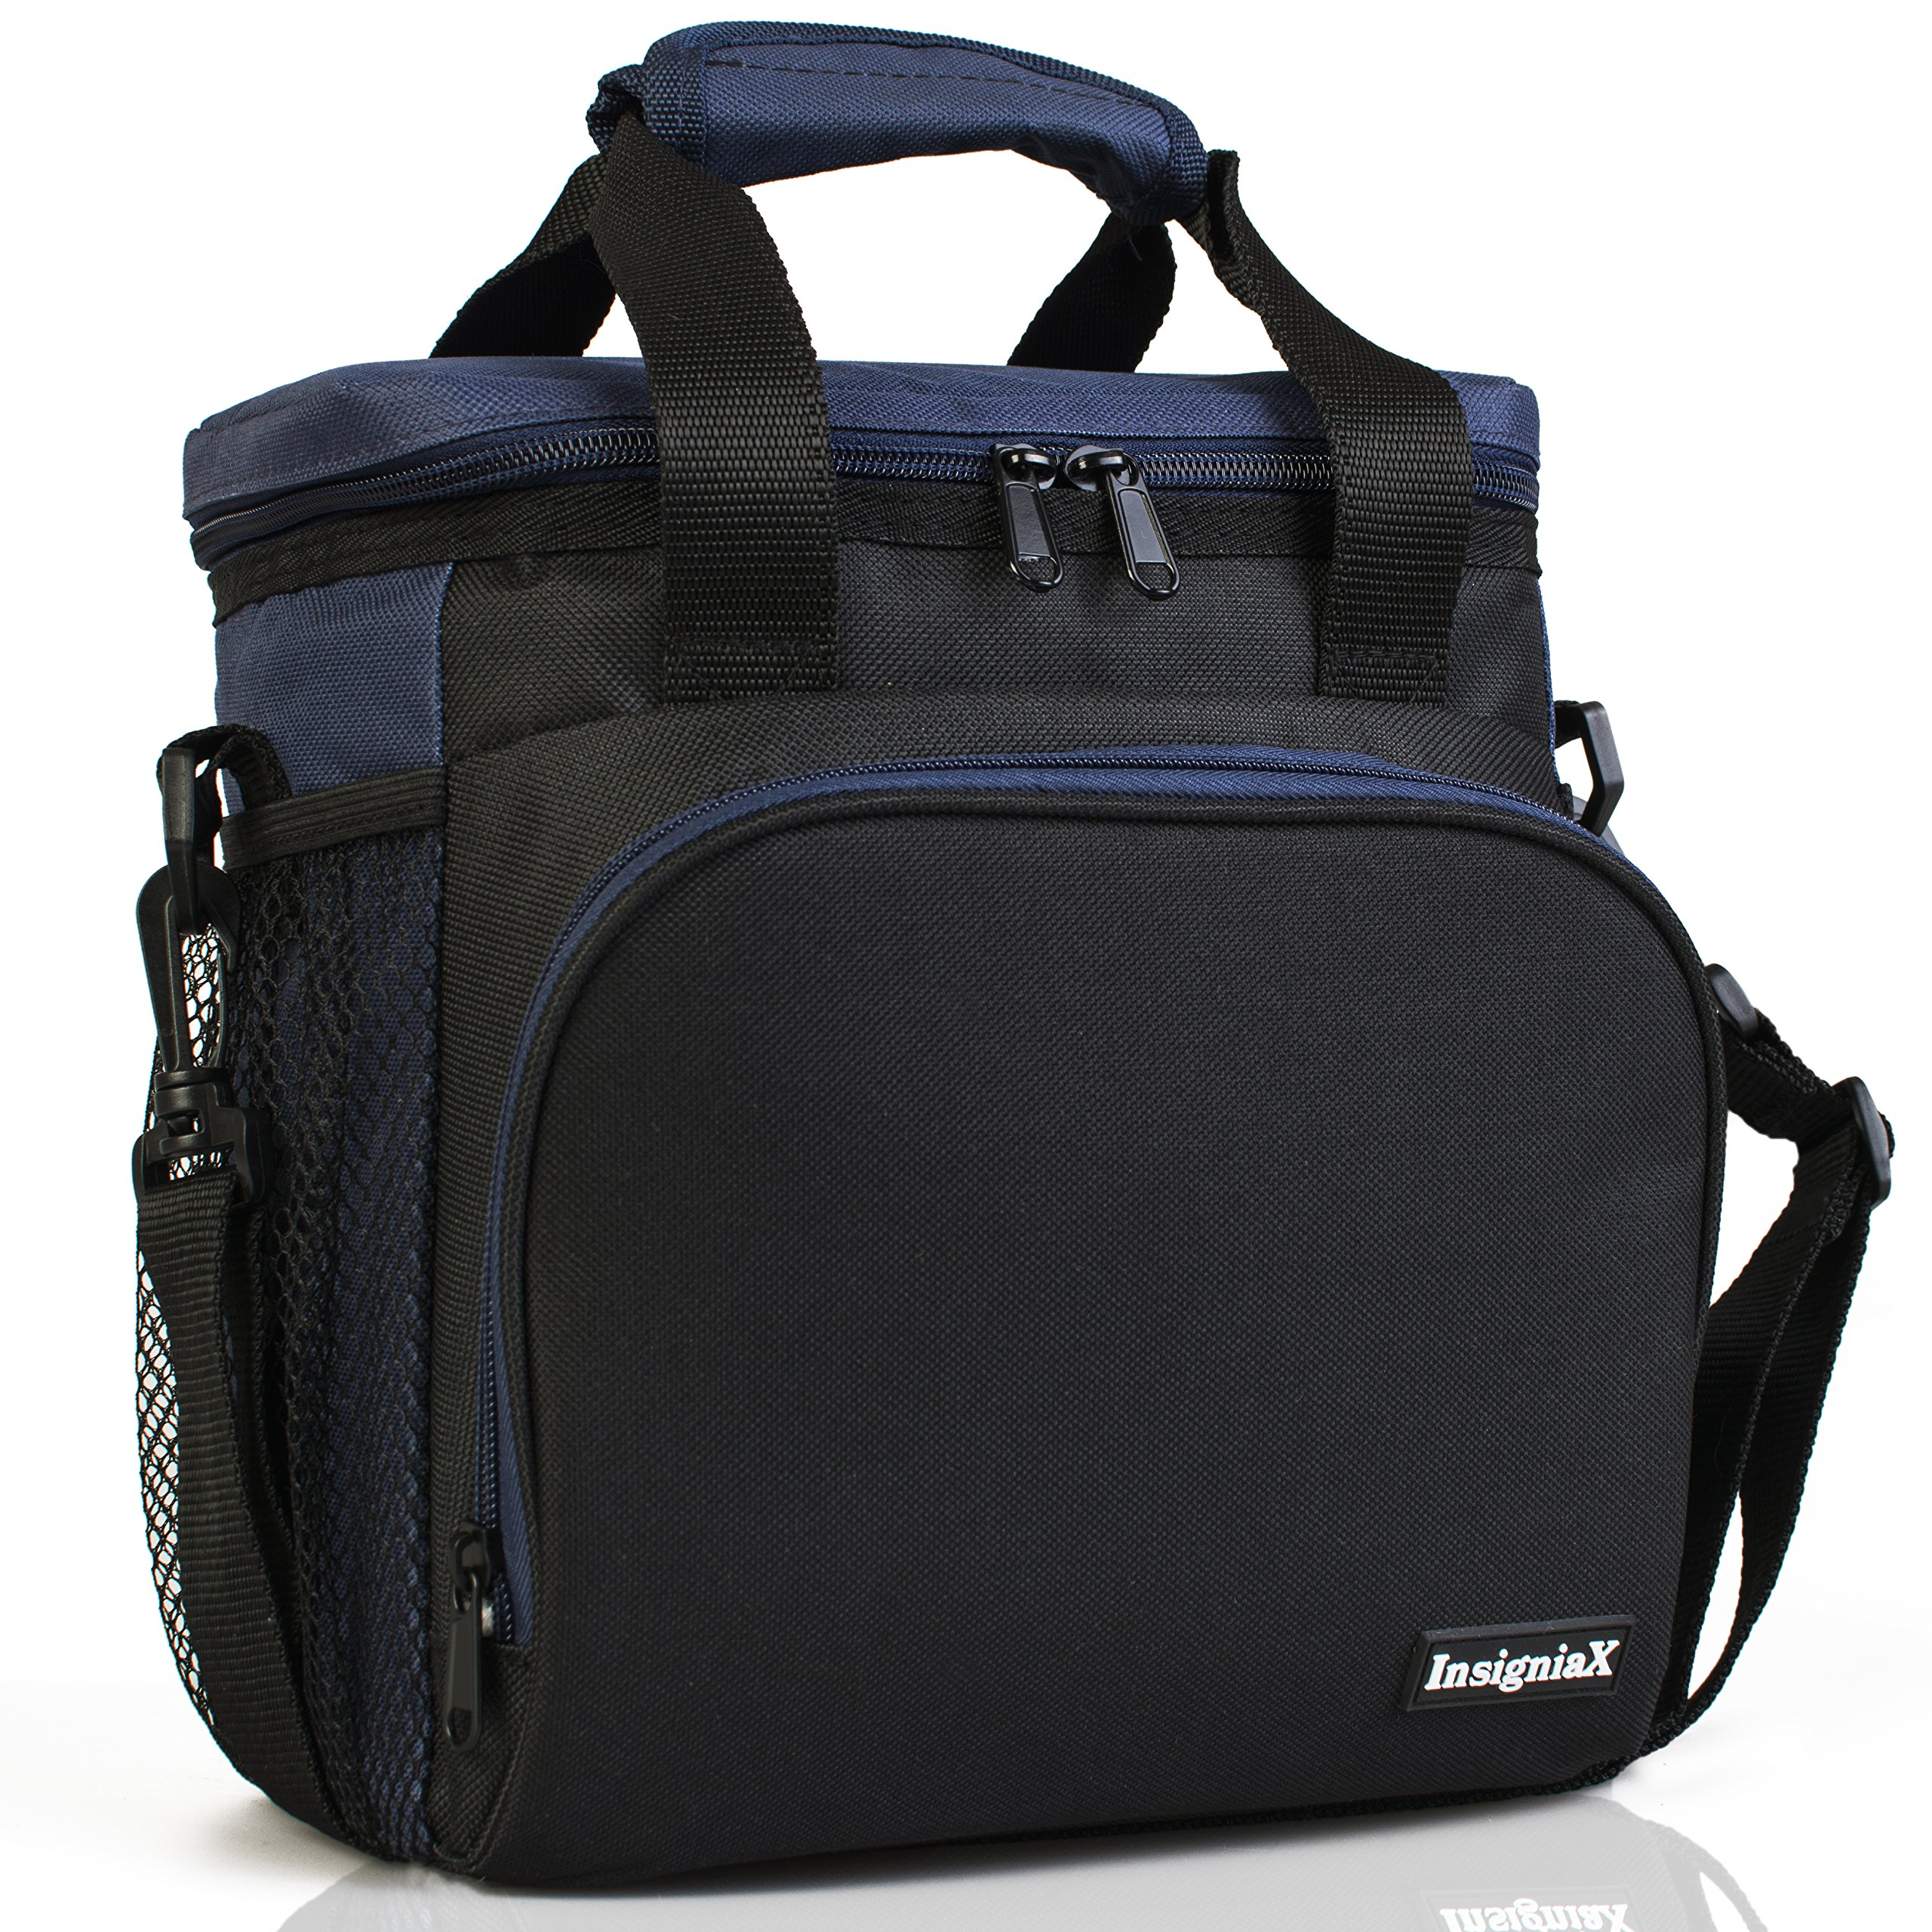 Insulated Lunch Bag S2: InsigniaX Cool Lunch Box/Cooler/Lunchbox for Adult Women Men Work School Kids Girls Boys With Shoulder Strap Water Bottle Holder H: 10'' x W: 5.1'' x L: 9.2'' (Standard,Navy Blue)